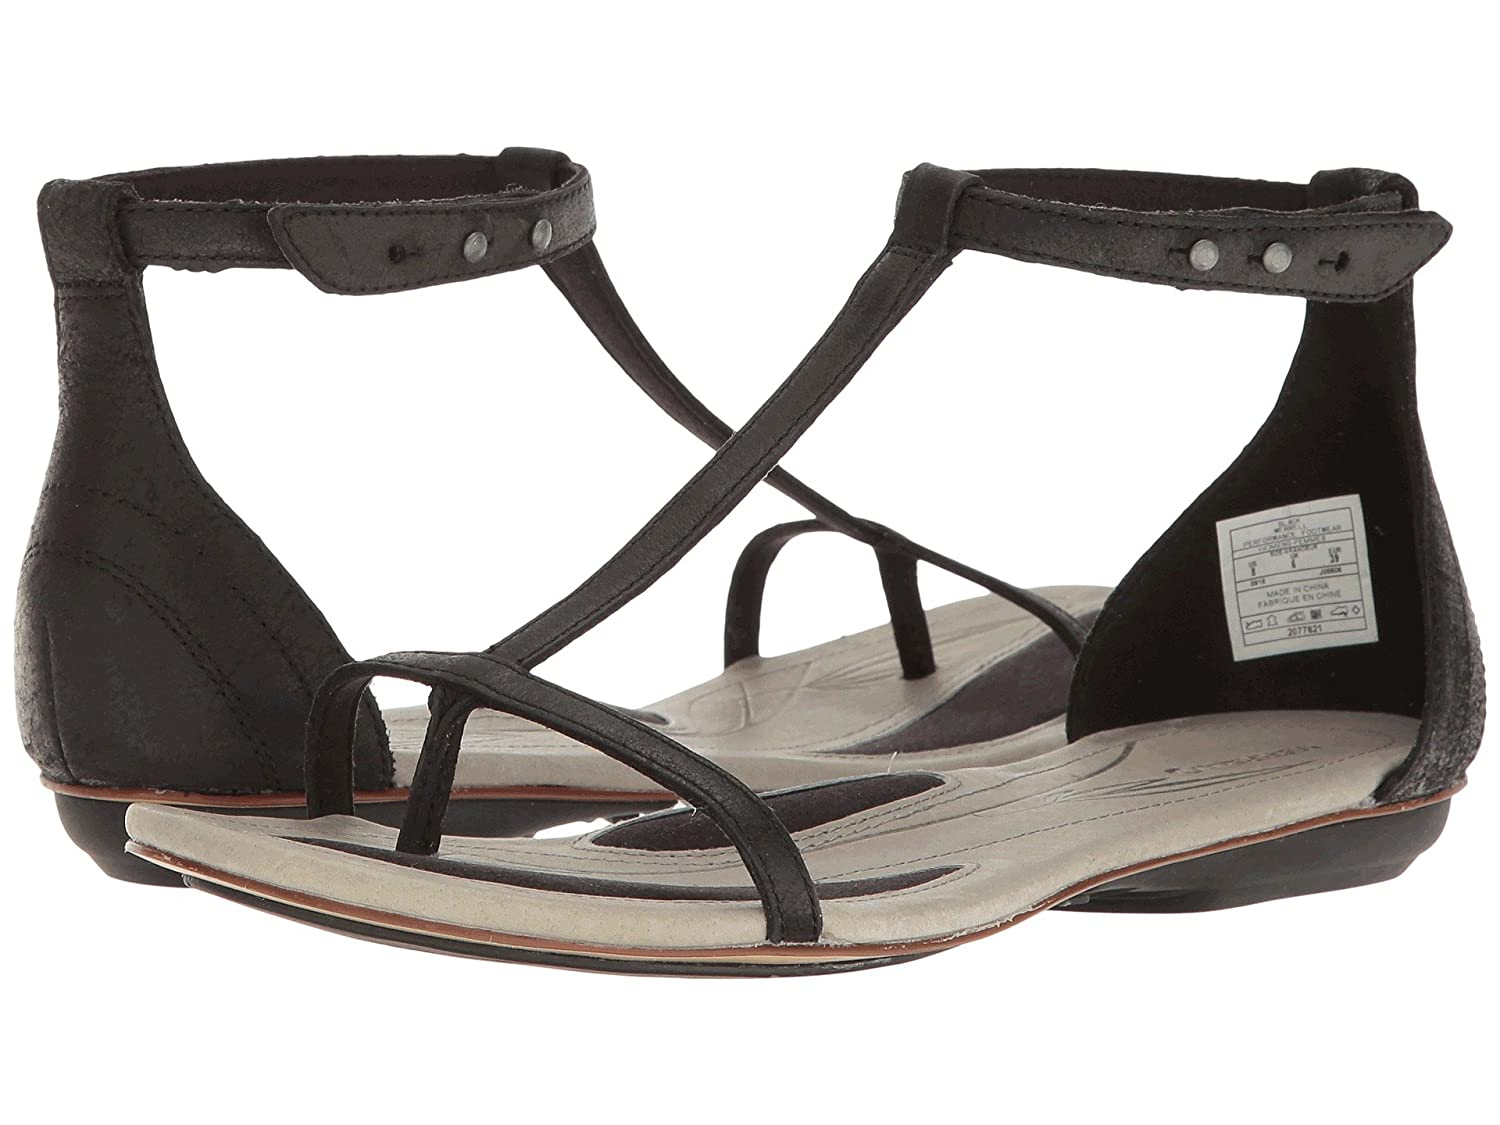 361c4007aa5a Merrell Solstice T Strap Sandal - Women s Black 5  Amazon.co.uk  Shoes    Bags